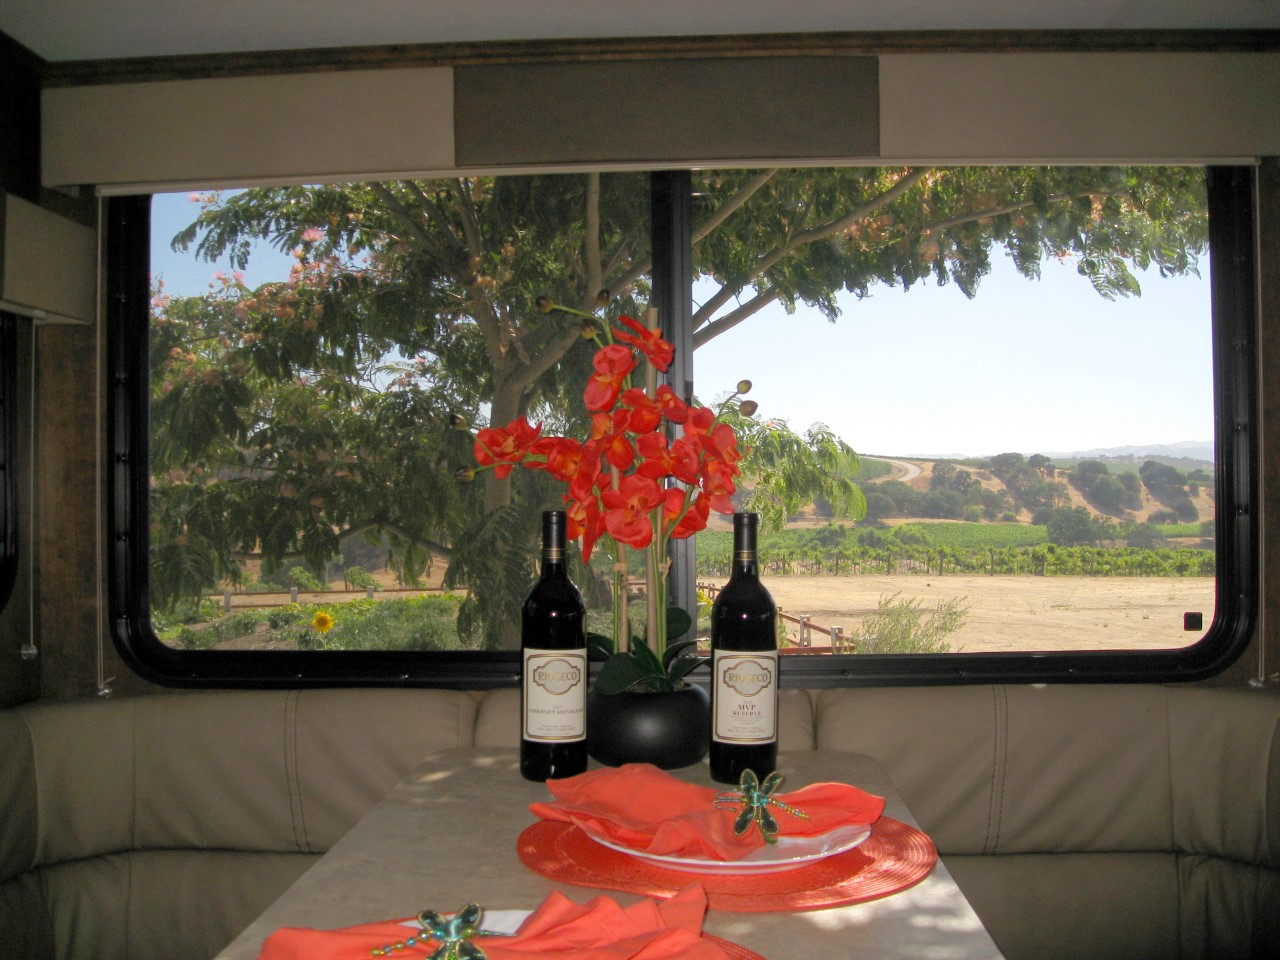 Rio Seco Winery - Harvest Hosts RV camping area